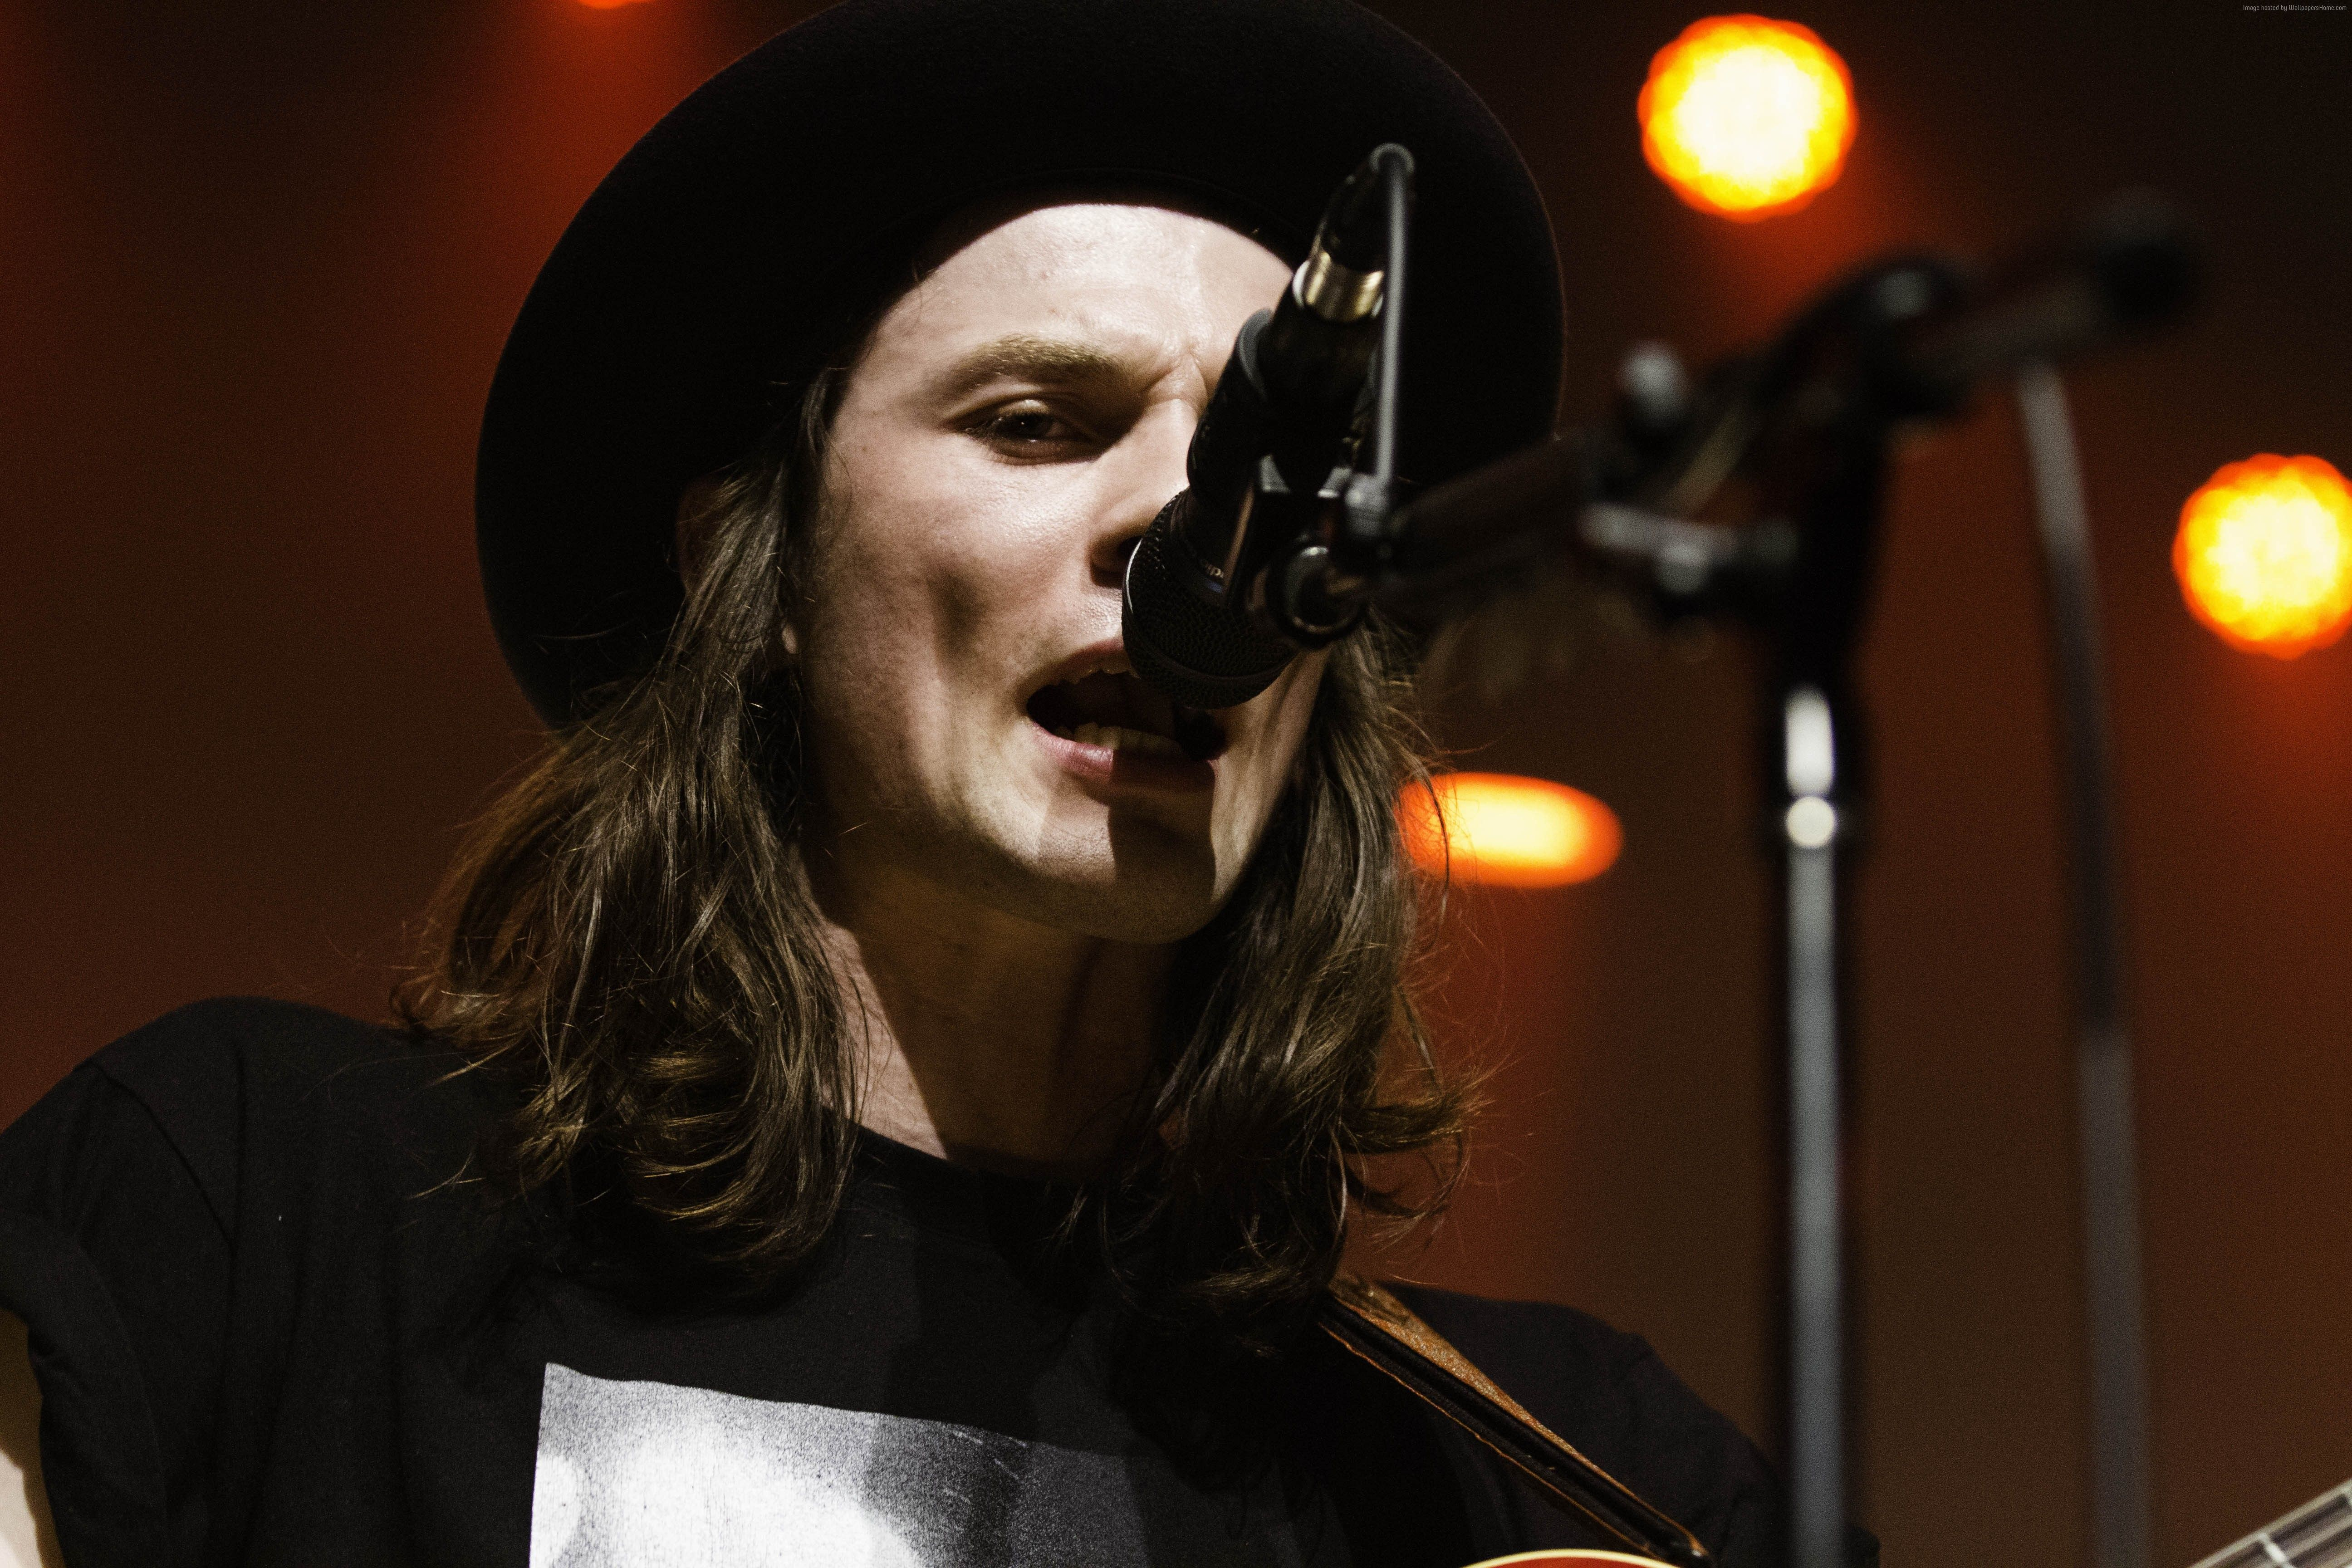 Wallpapers James Bay, Top music artist and bands, singer